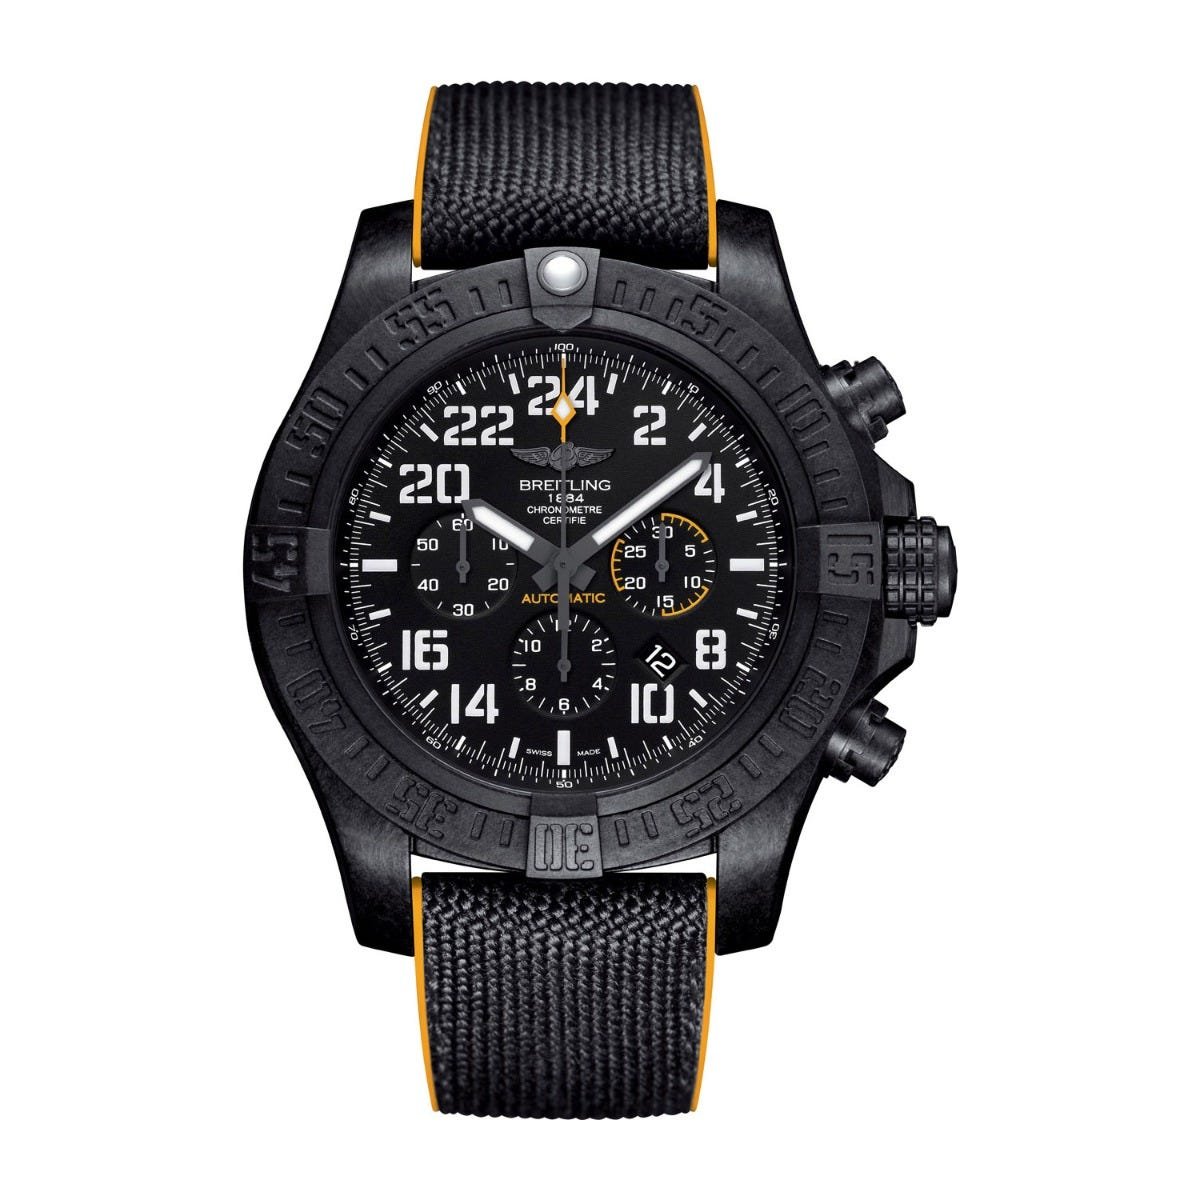 Breitling Avenger Hurricane Men's Yellow and Black Strap Watch